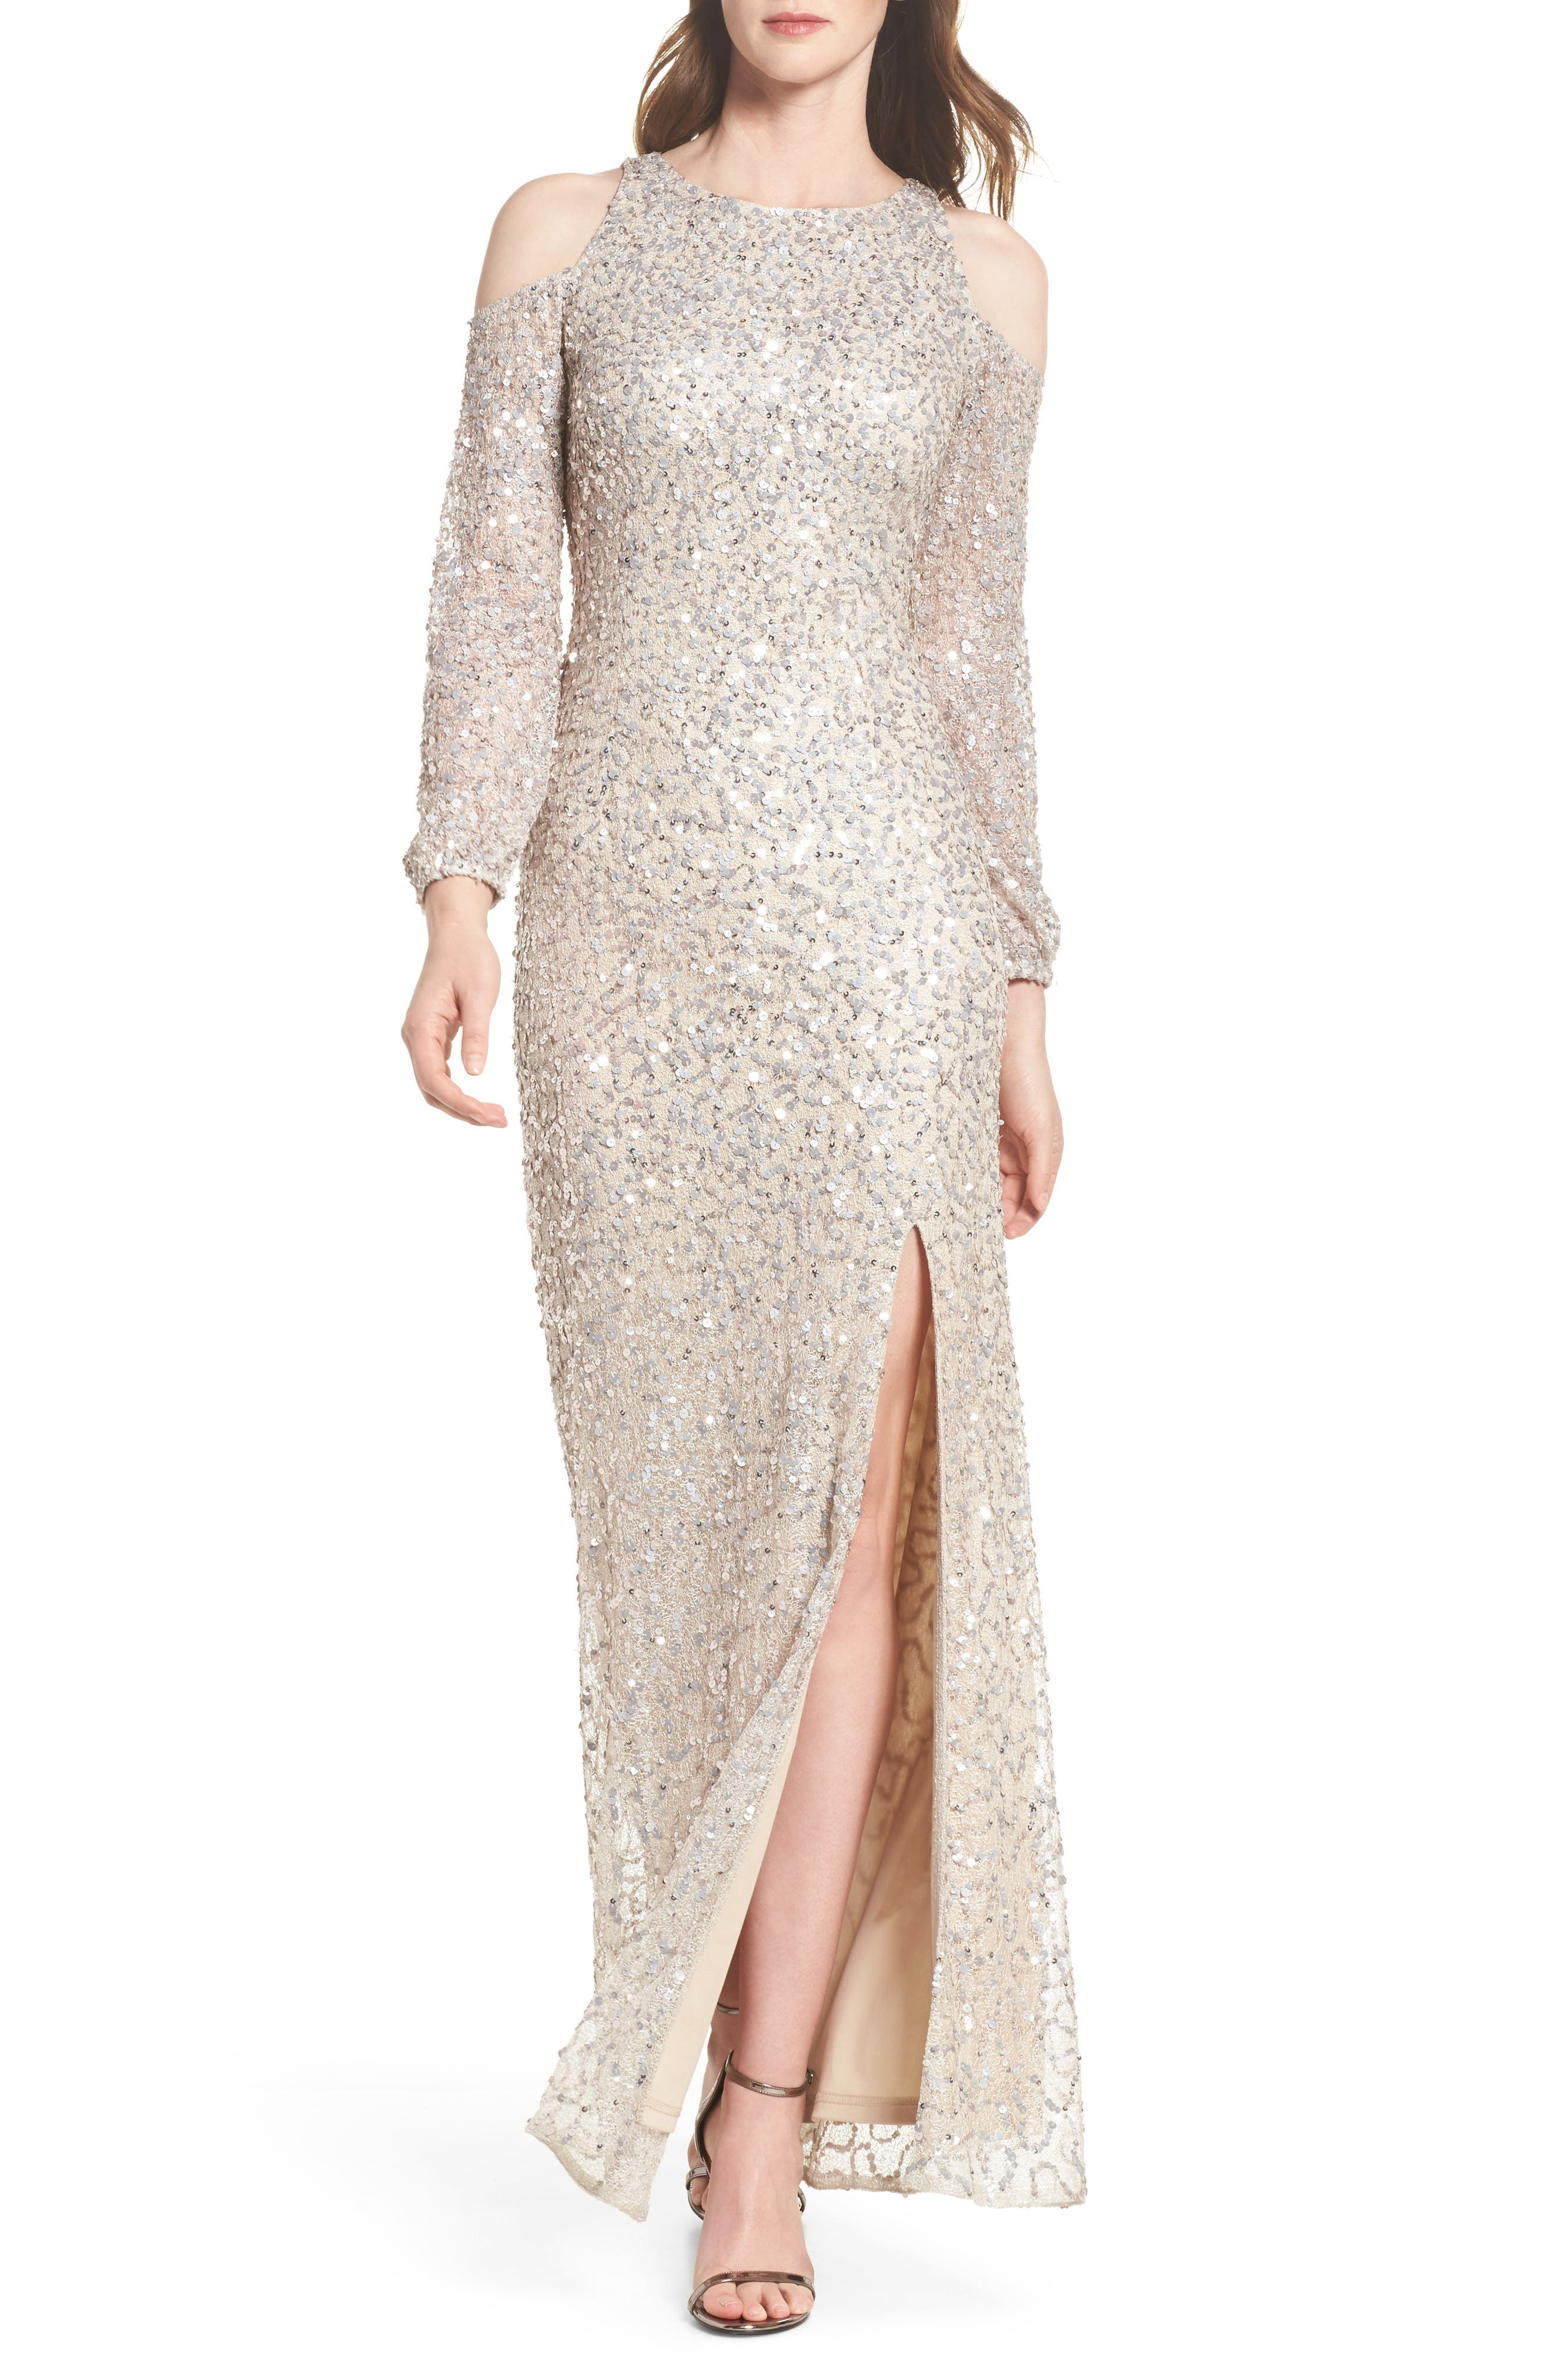 Alternate Image 1 Selected - Adrianna Papell Sequin Cold Shoulder Gown